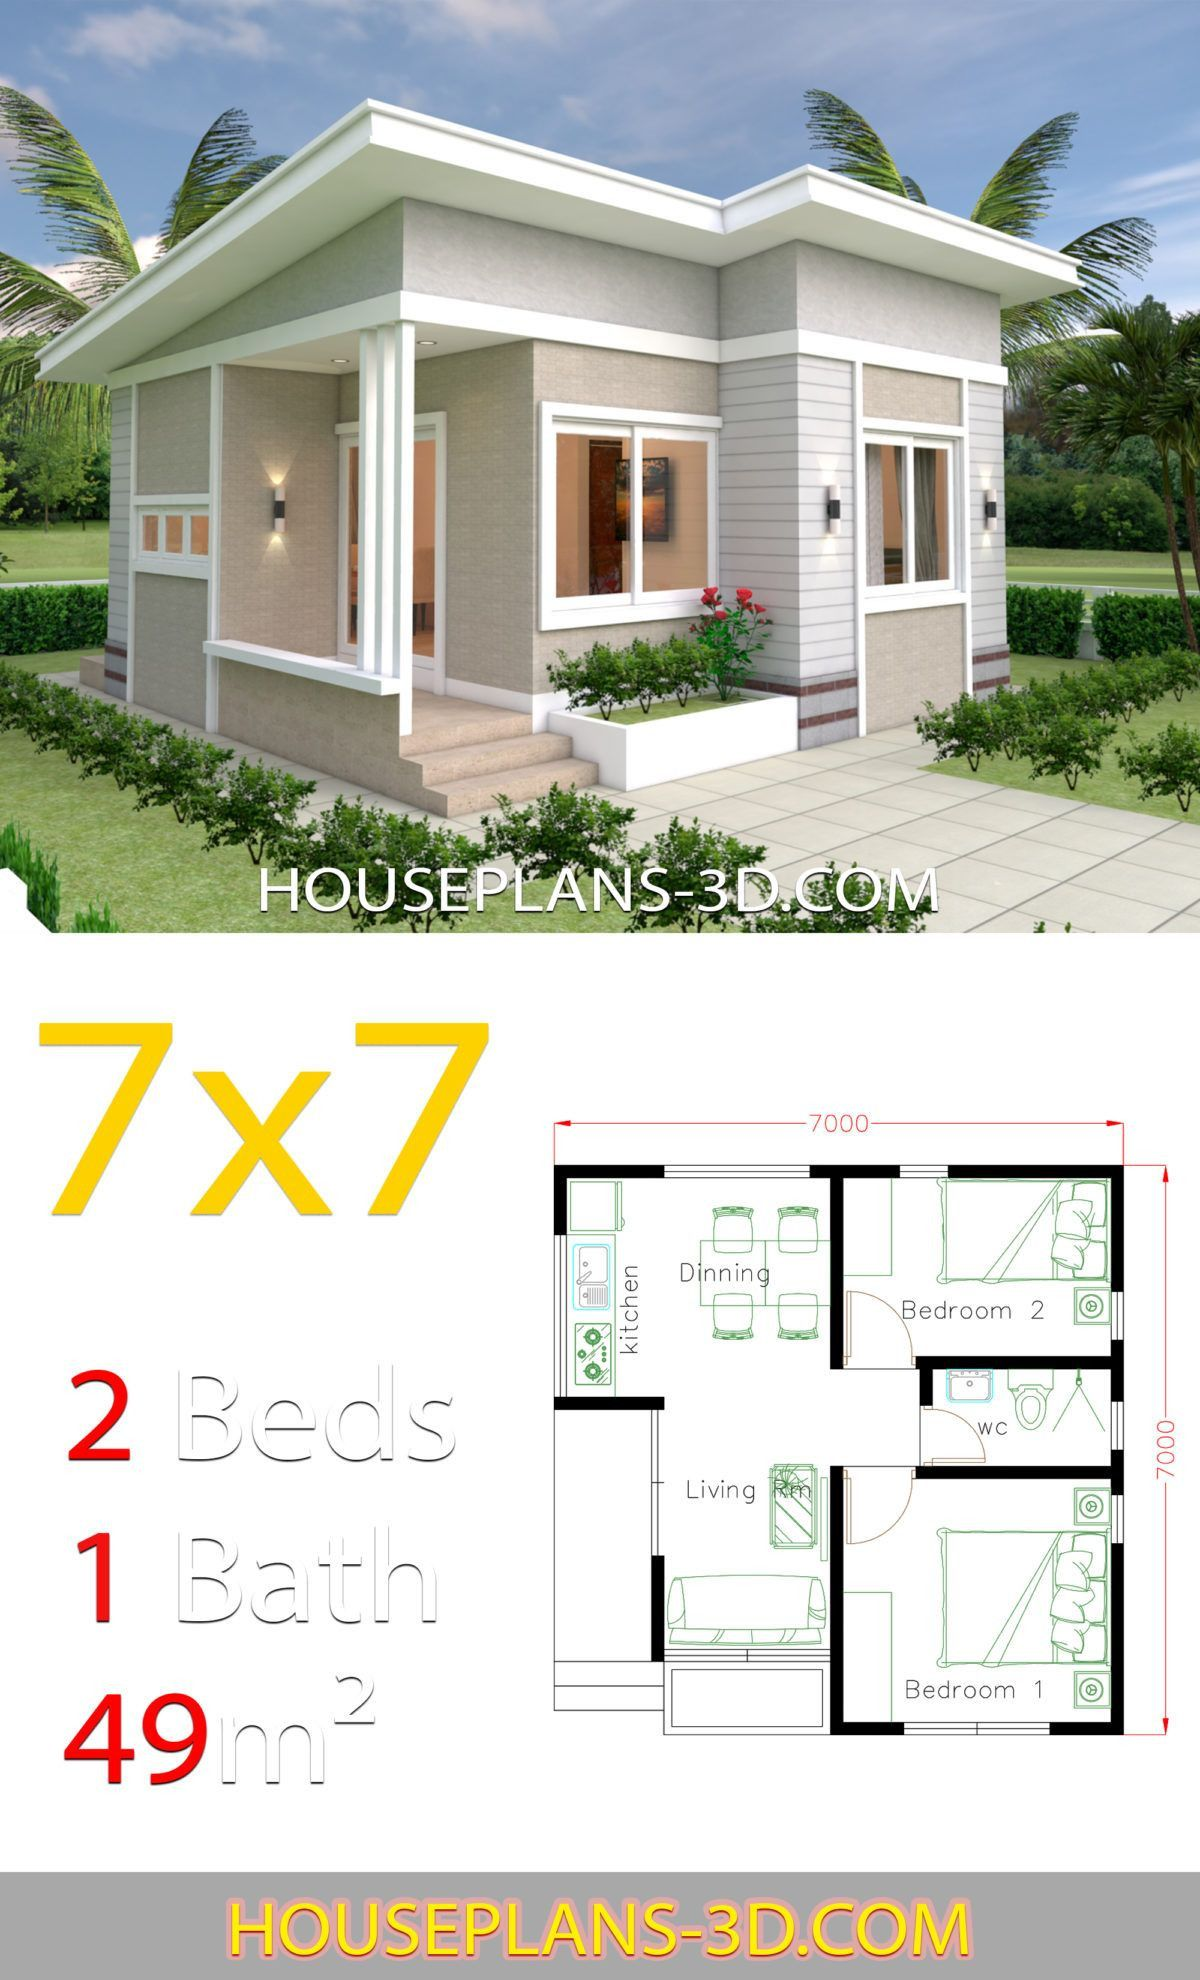 2 Bedroom House Designs Pictures 2 Bedroom House Designs Pictures 2020 House Design 6x7 Wit Small House Design House Design Pictures Small House Design Plans